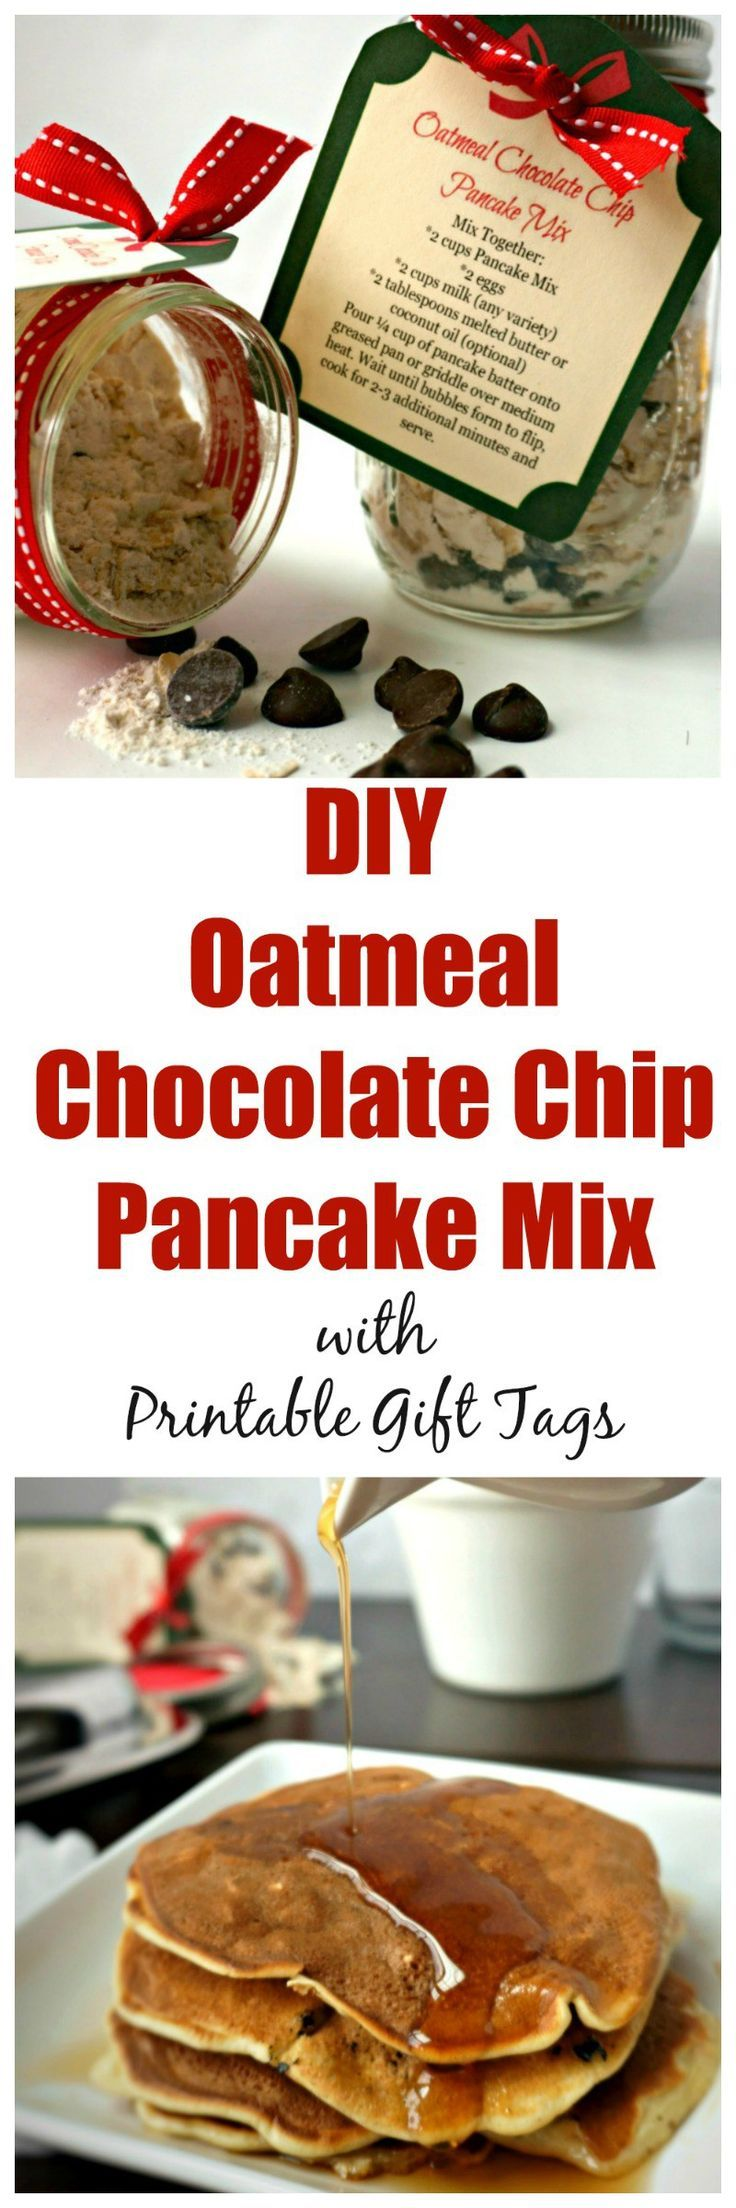 DIY Oatmeal Chocolate Chip Pancake Mix with Printable Gift ...